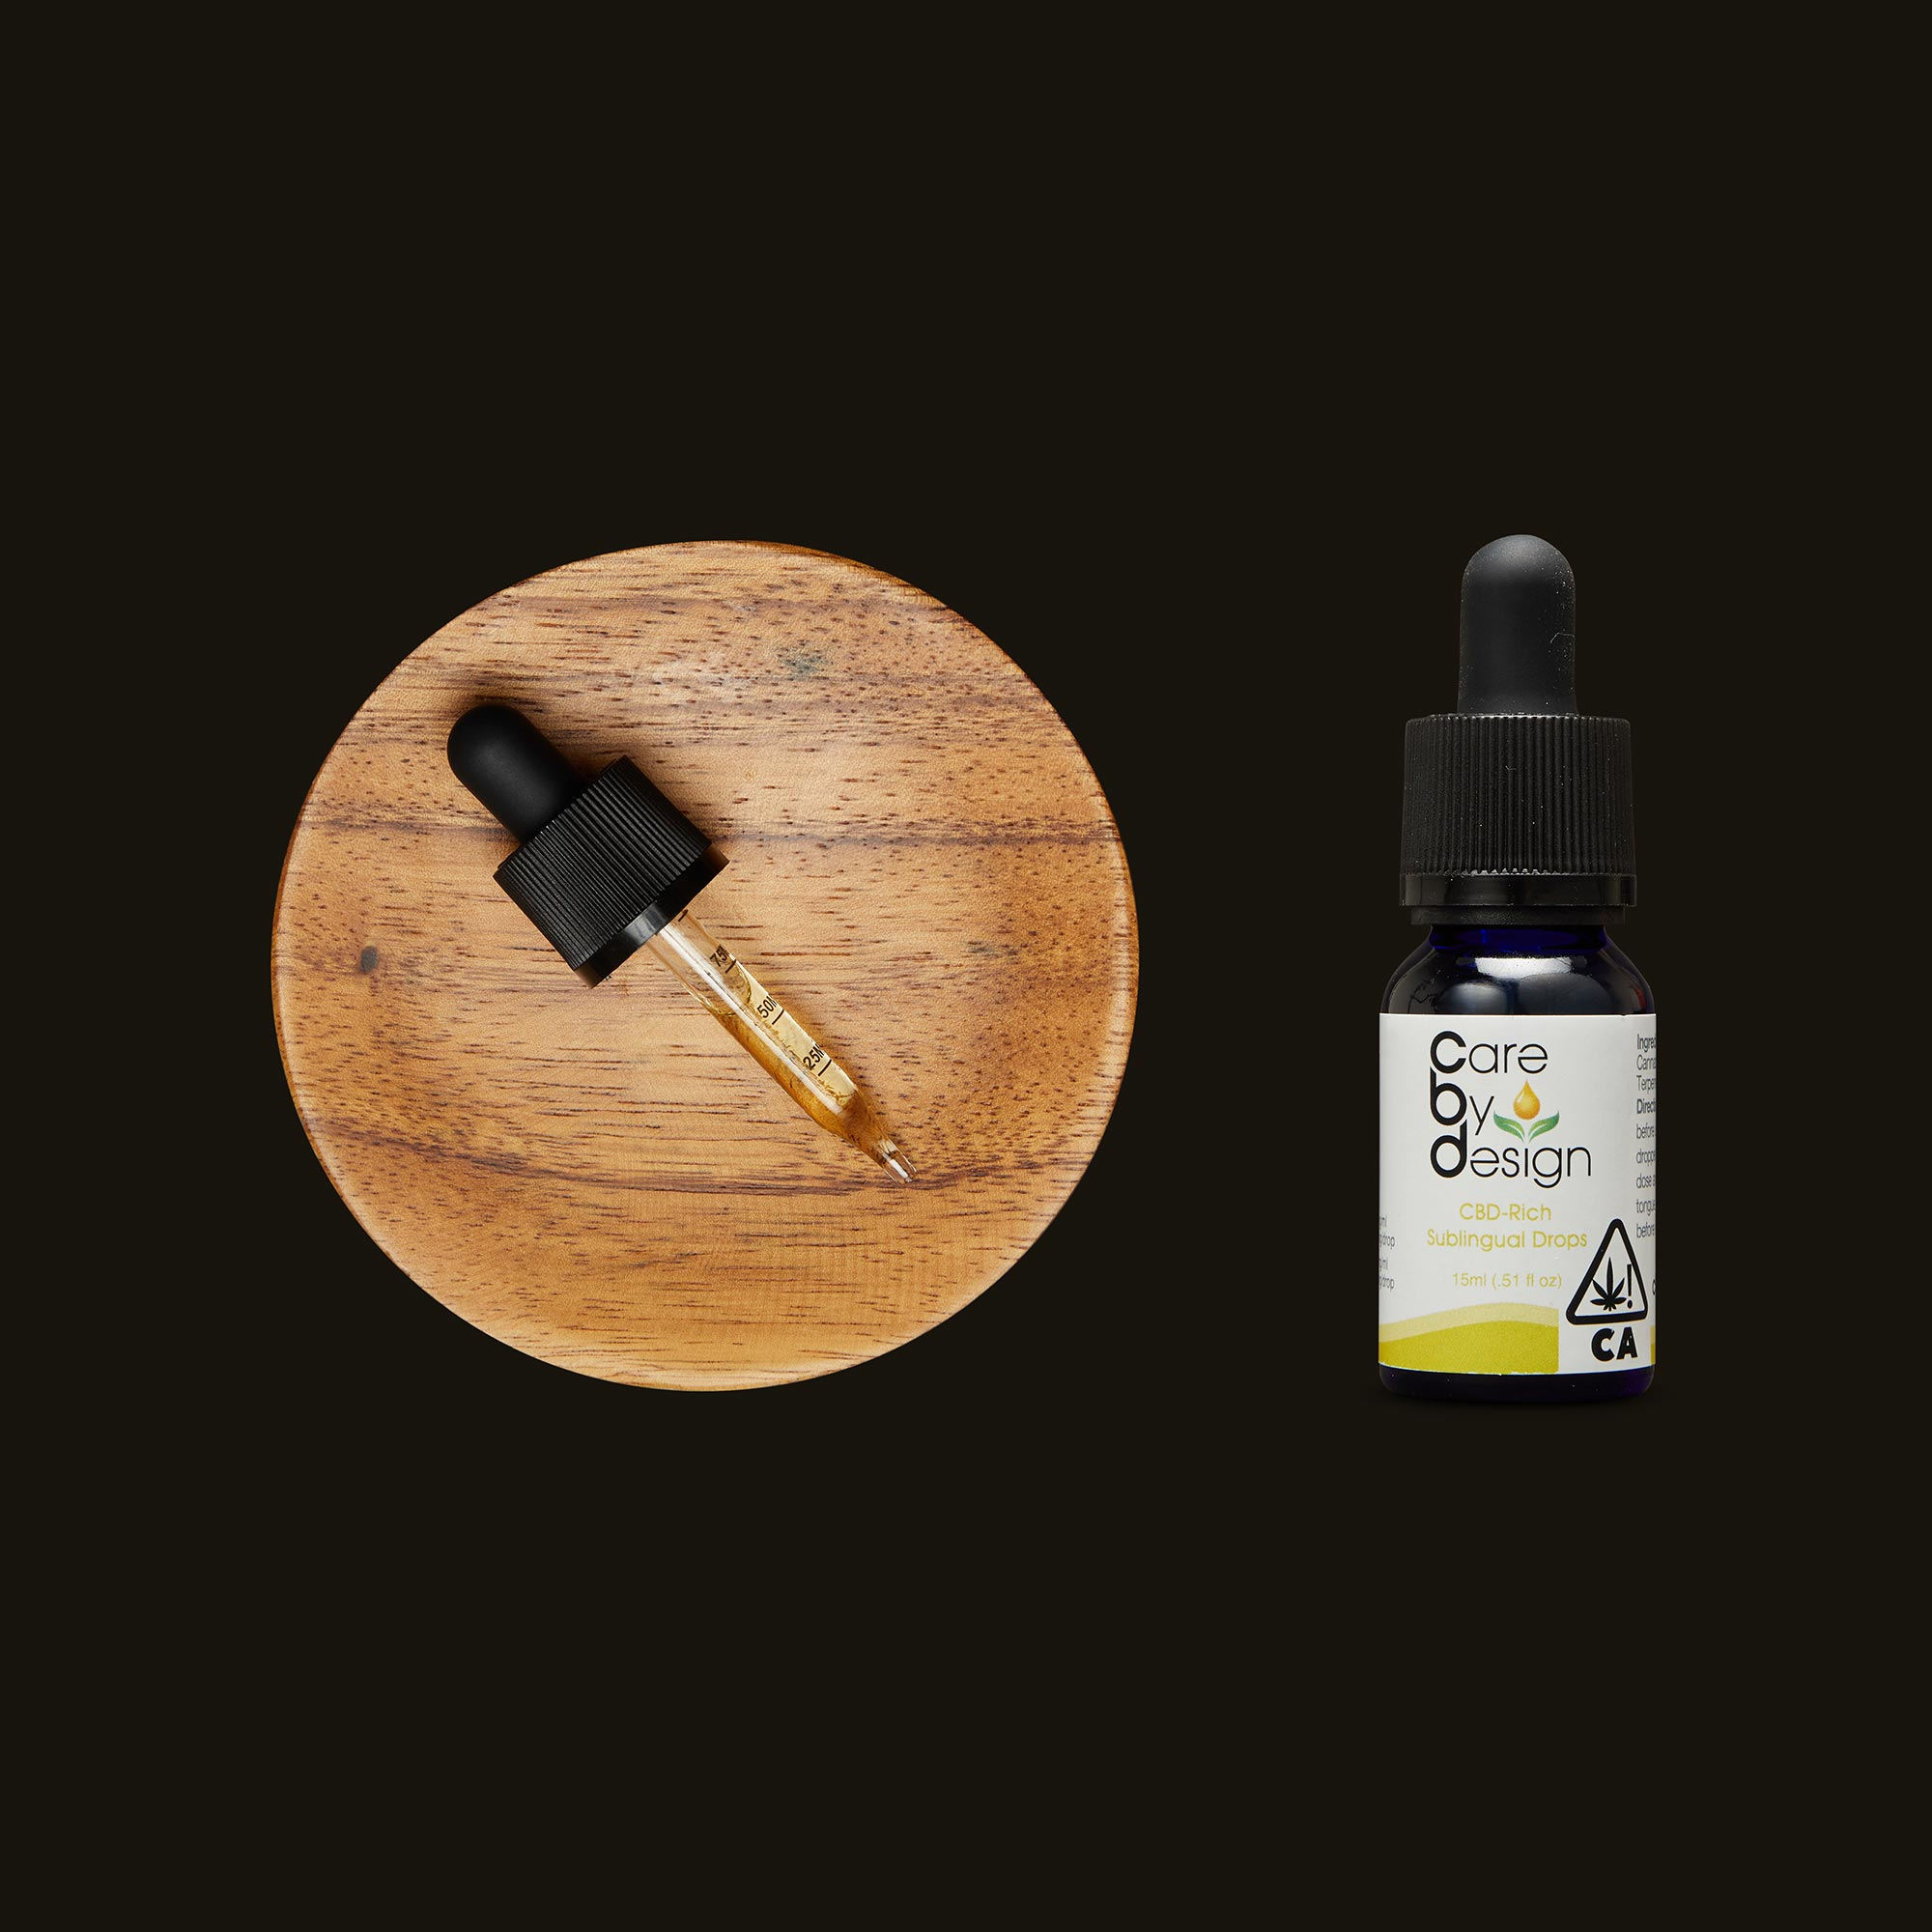 Care By Design 4:1 Sublingual Drops